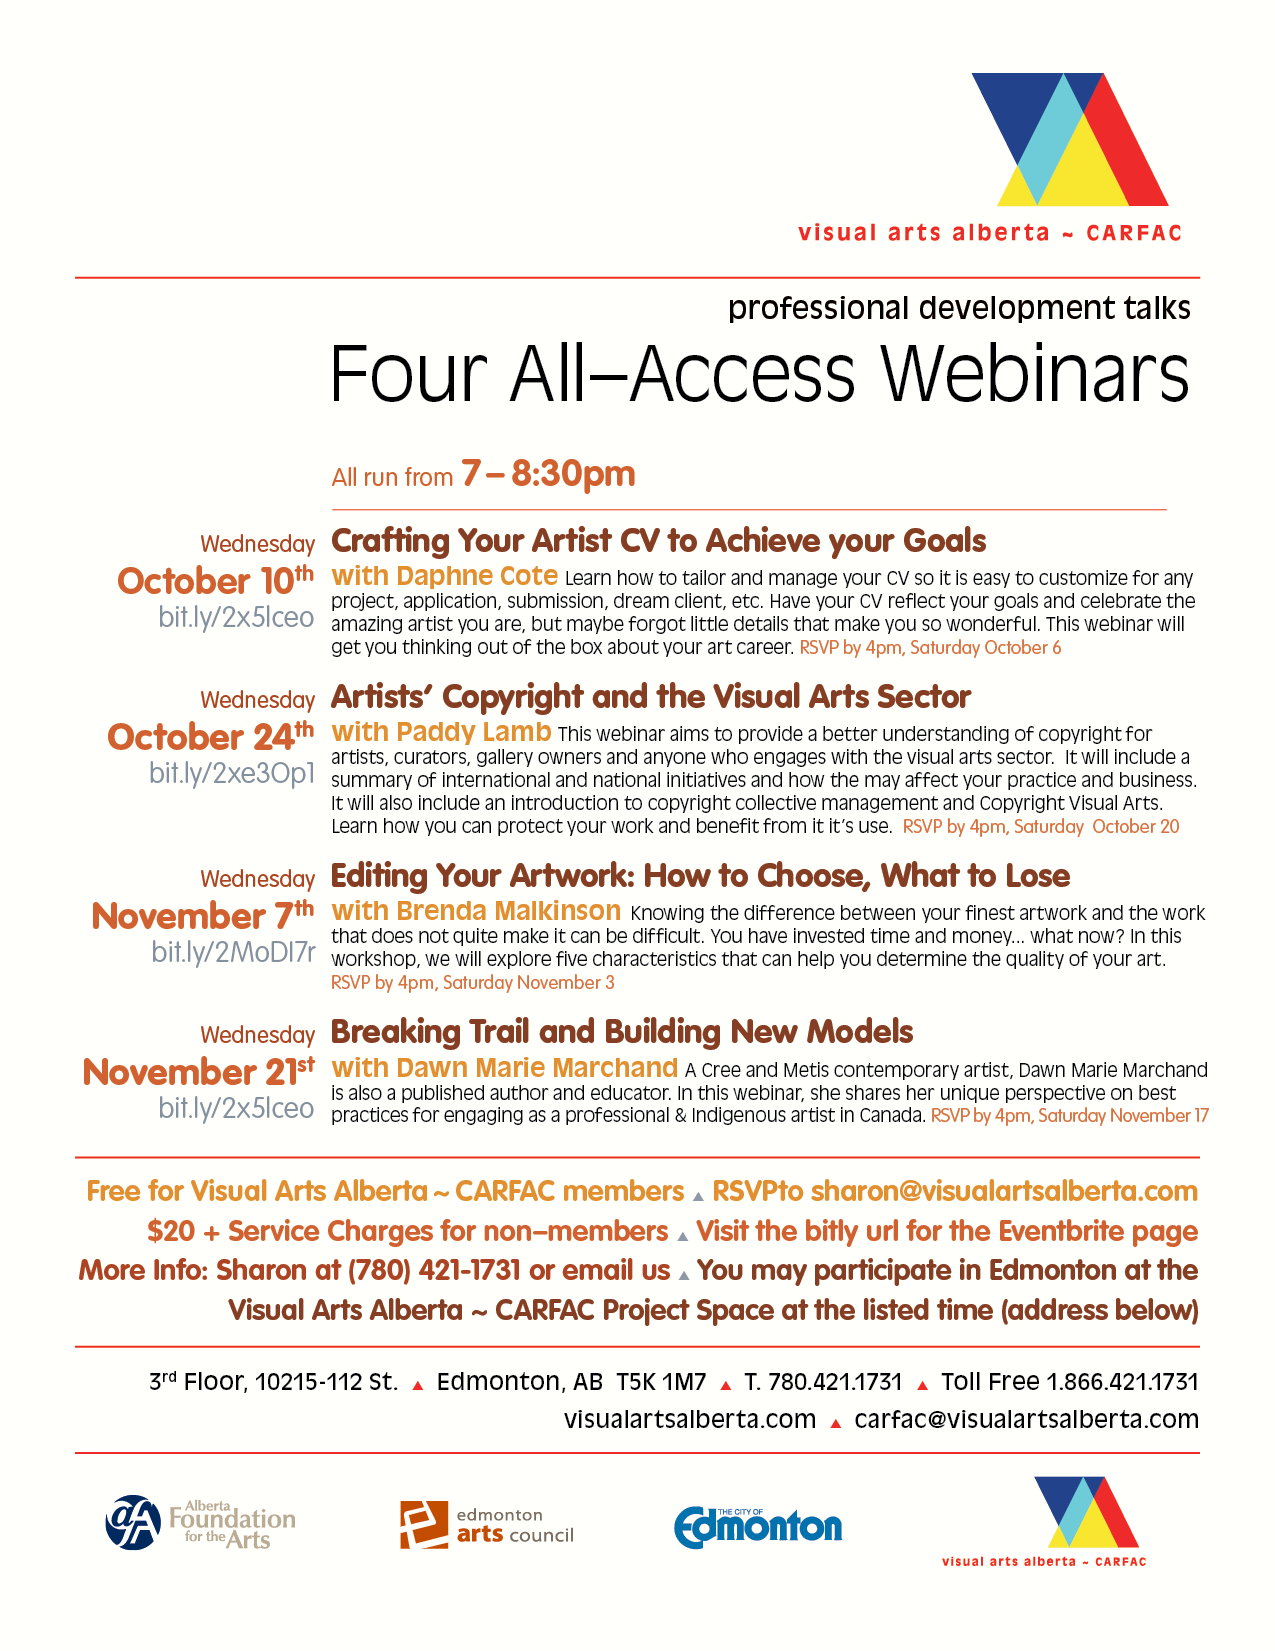 Poster for Four Webinars